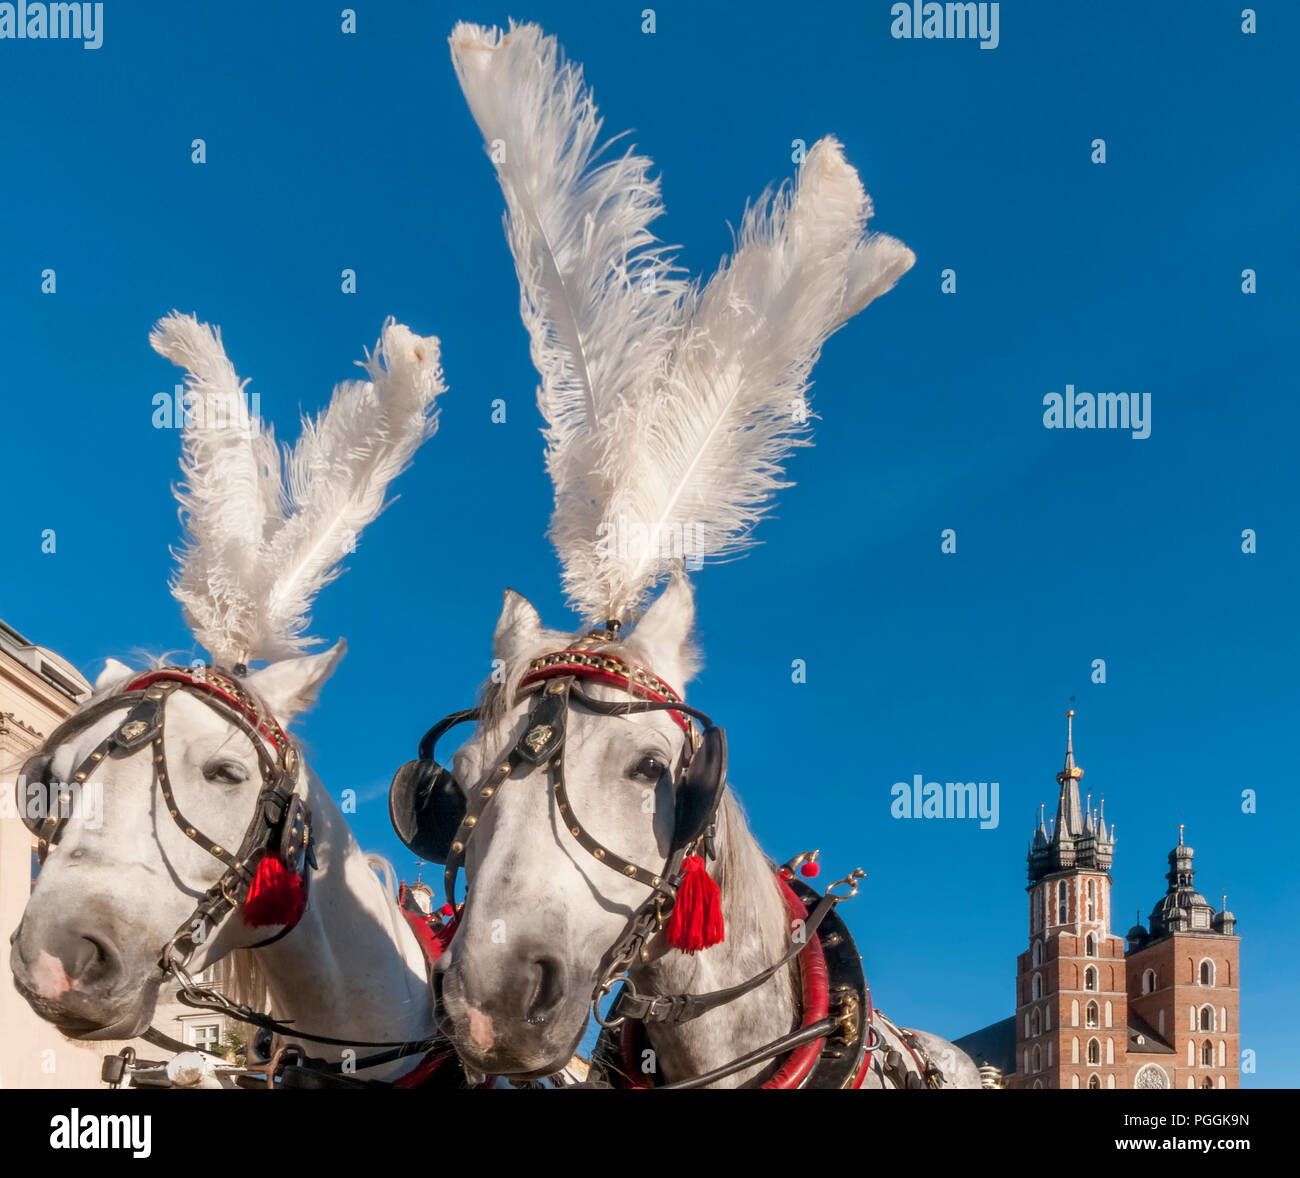 Pair of white horses with the Saint Mary's Basilica in the background in the historic center of Krakow, Poland on a beautiful sunny day - Stock Image